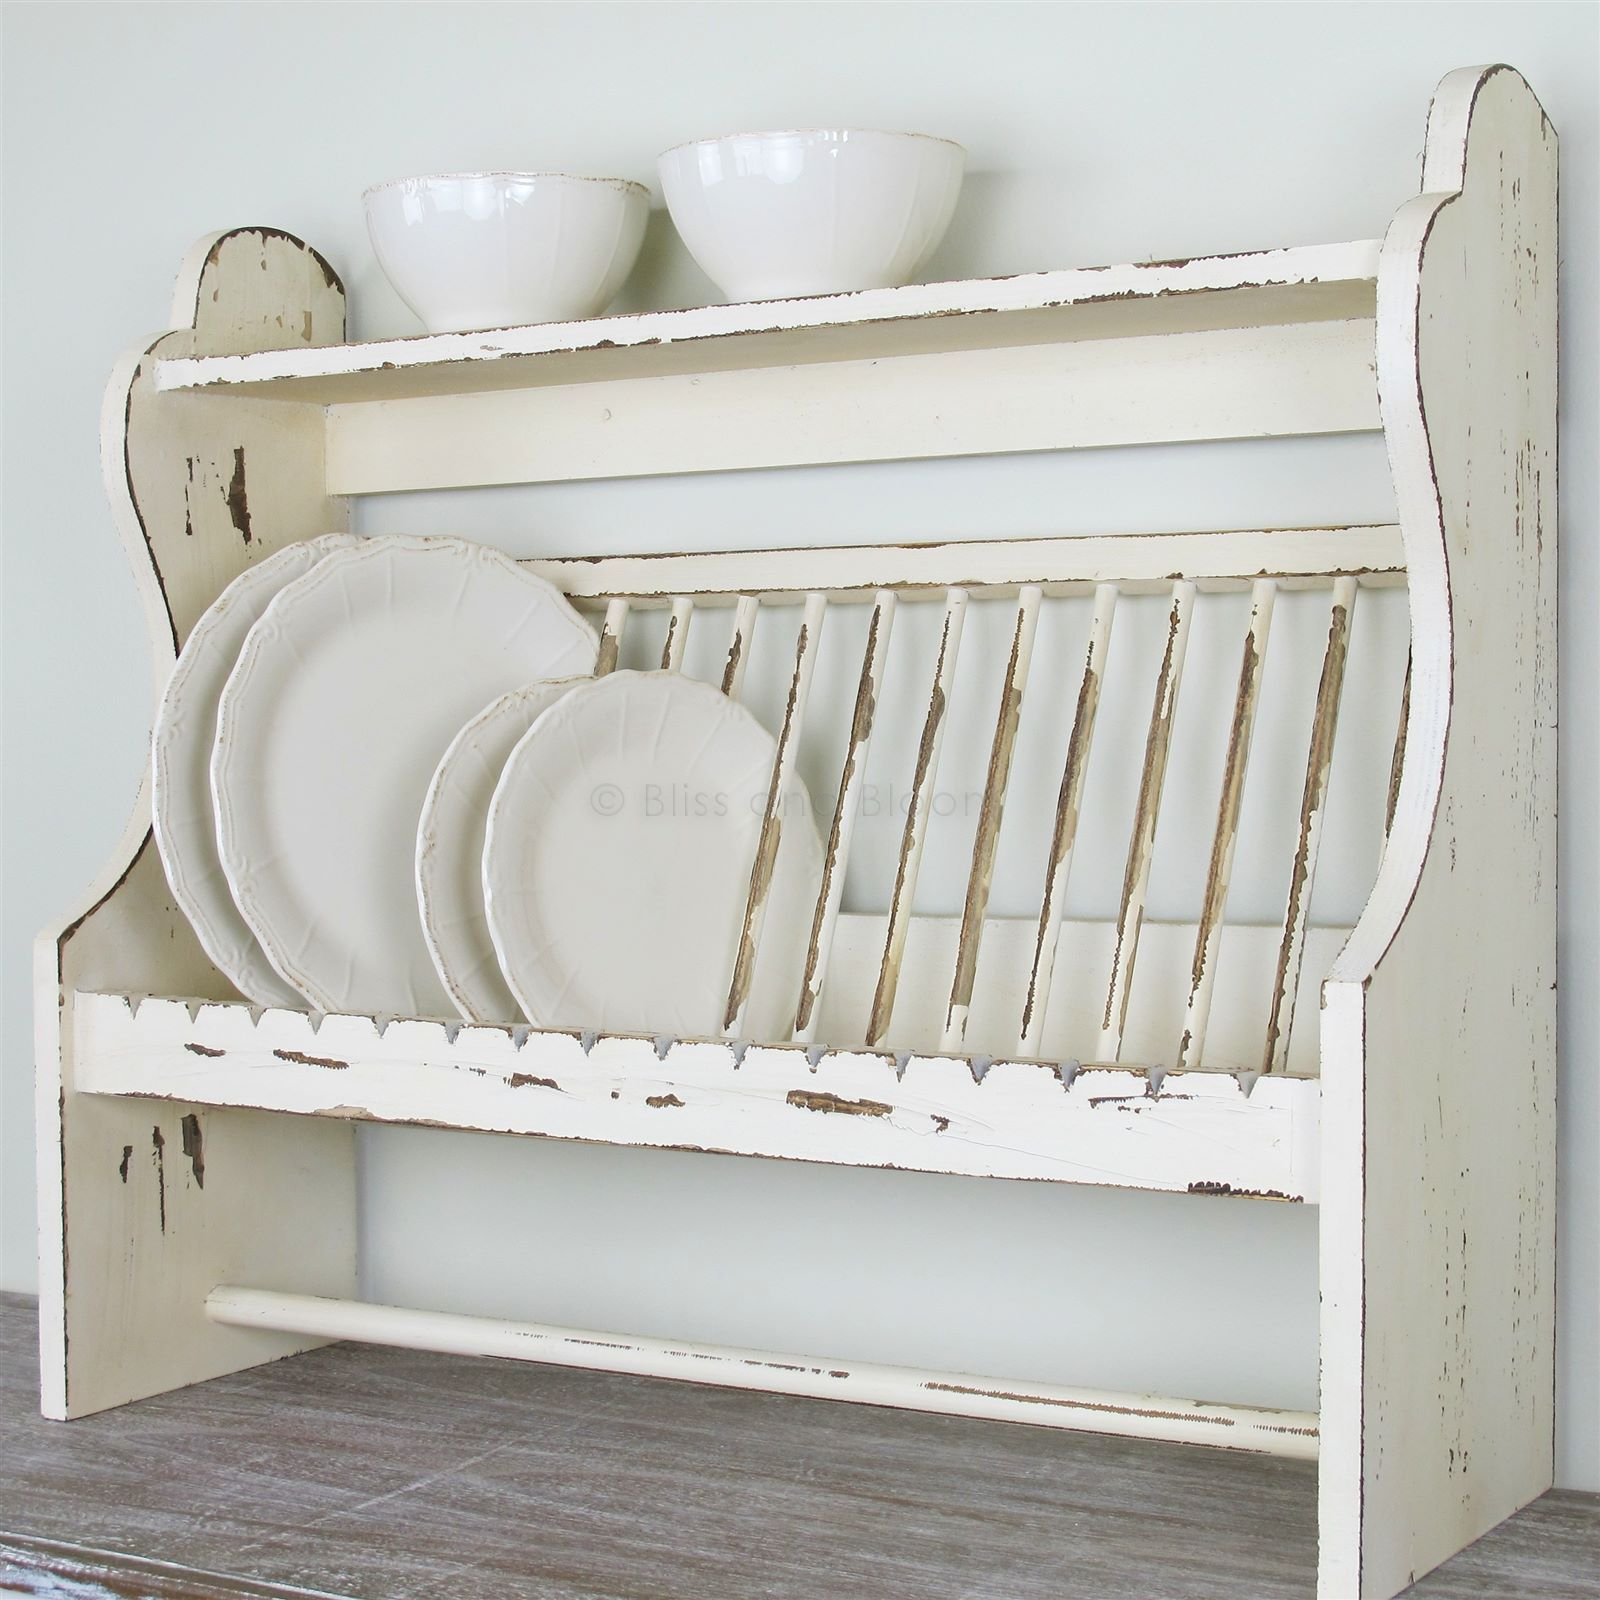 Wooden Plate Rack Shelf Bliss And Bloom Ltd Wooden Plate Rack Farmhouse Style Kitchen Cabinets Wooden Plates